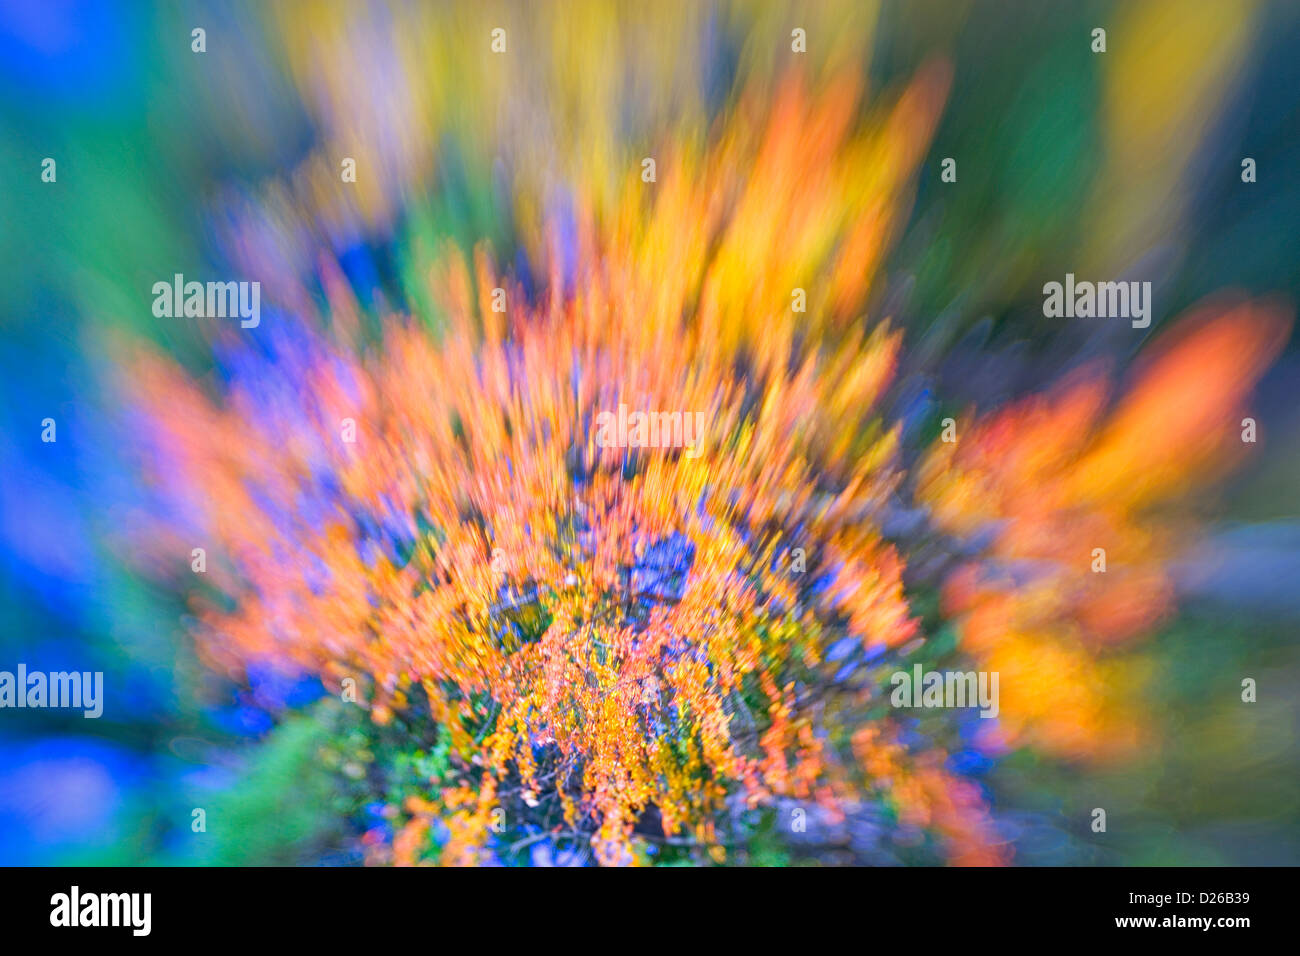 Stock Photograph Of Fall Color Abst - Stock Image